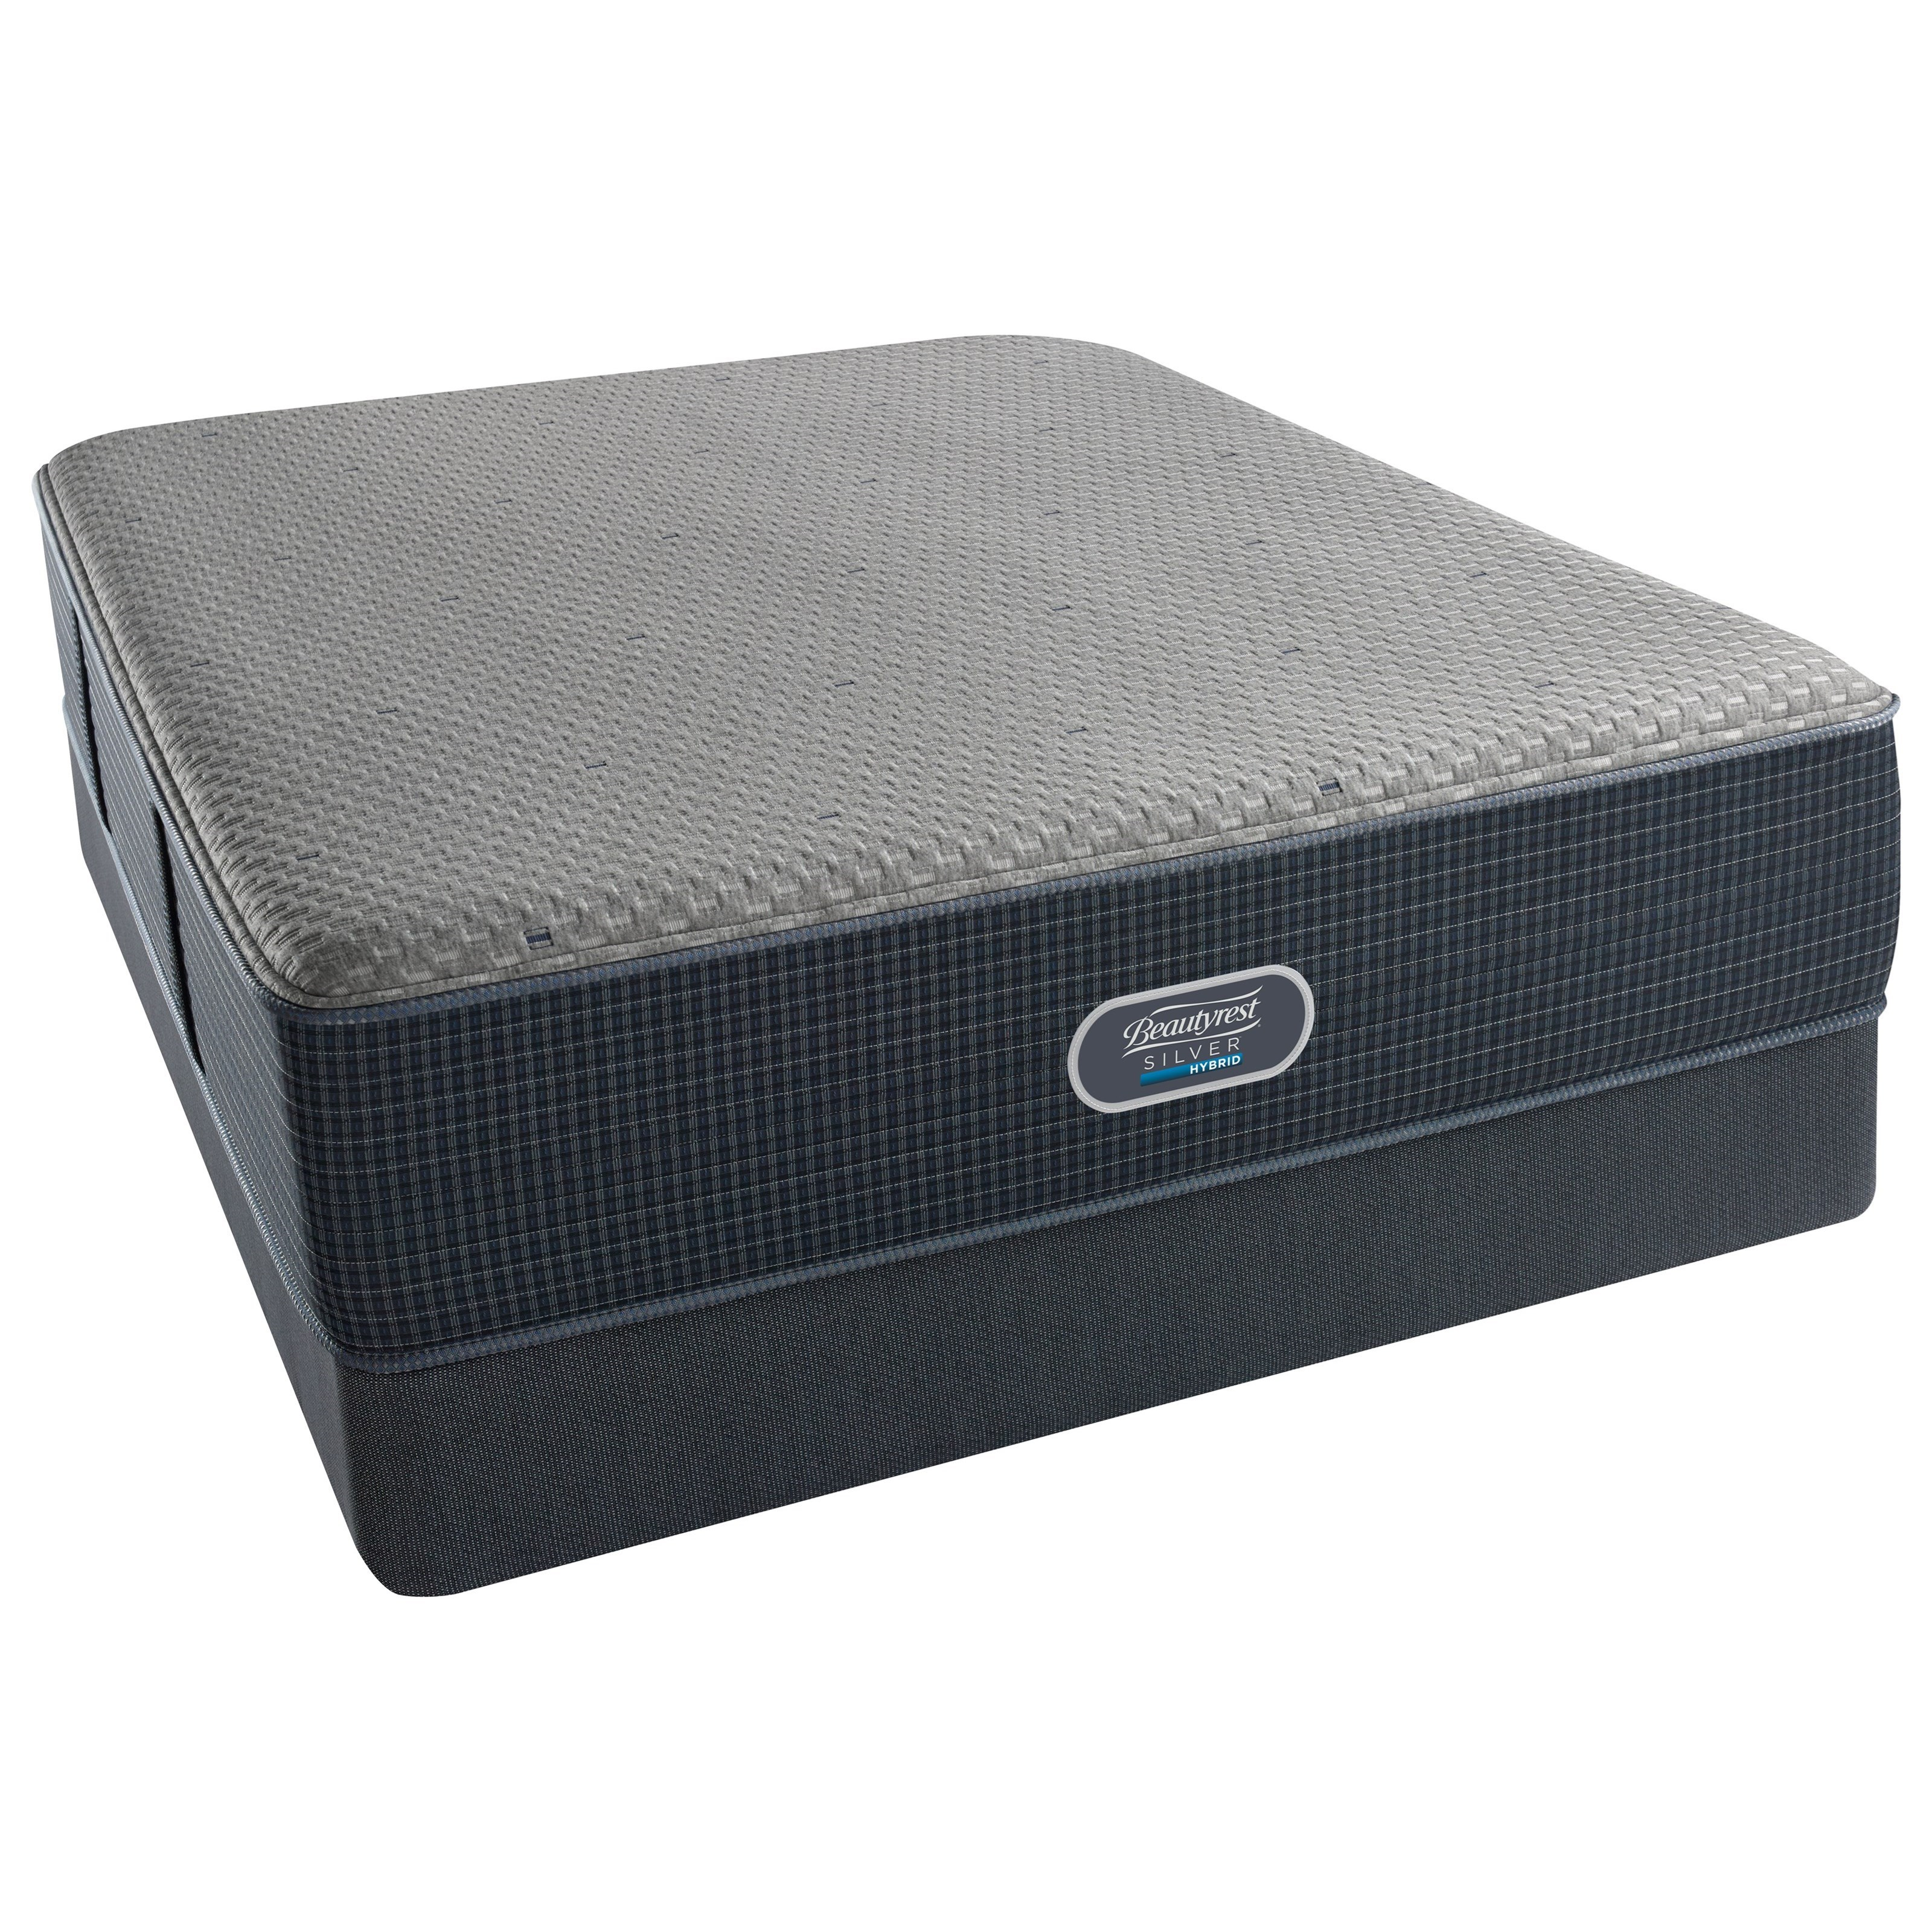 Beautyrest Silver Hybrid Harbour Beach Luxury Firm Twin Set - Item Number: 700601004-1010+700600254-5010